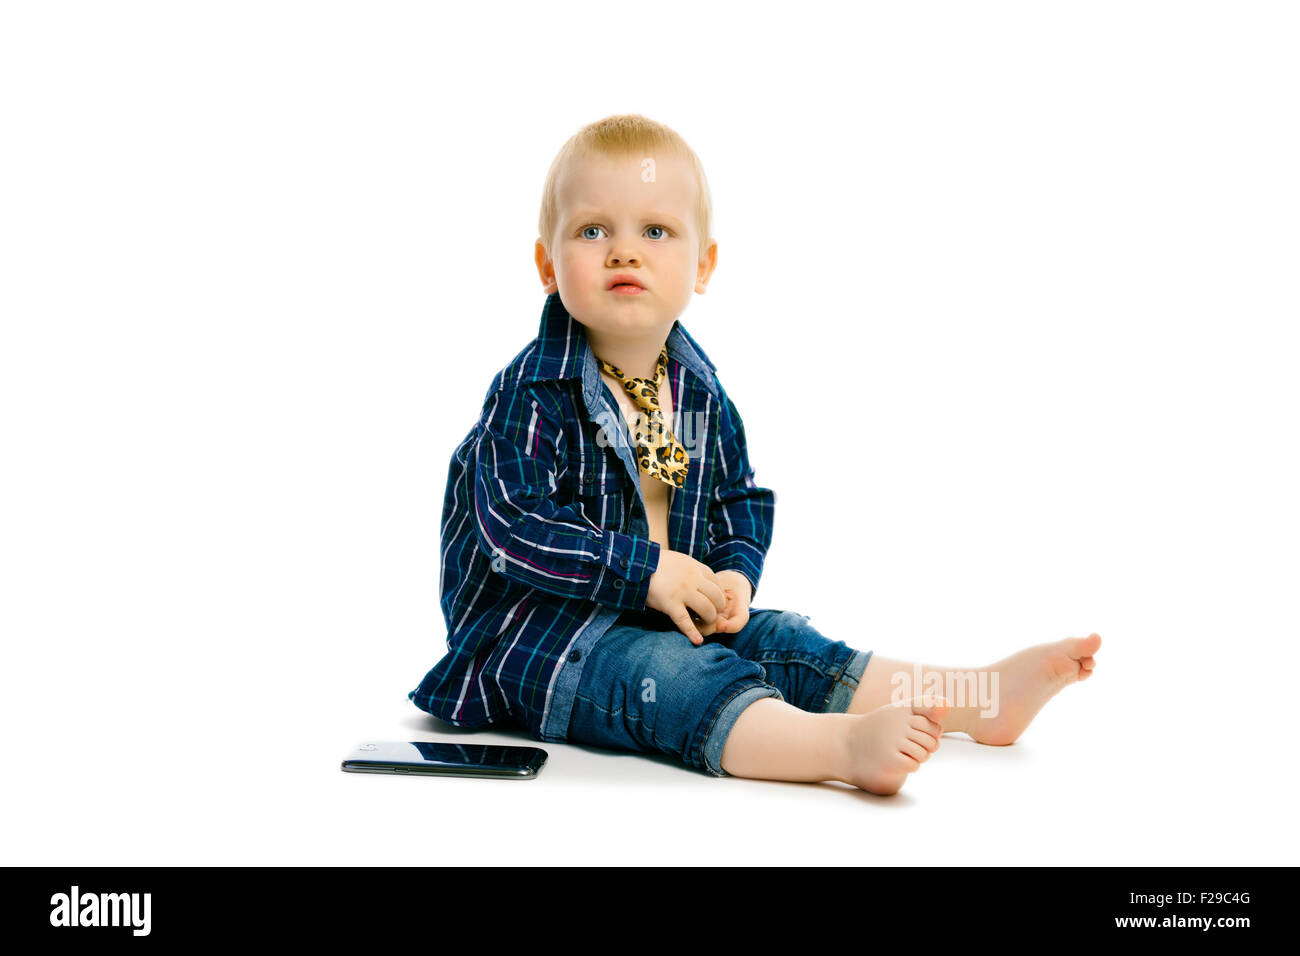 baby boy in a tie sitting on a white floor - Stock Image